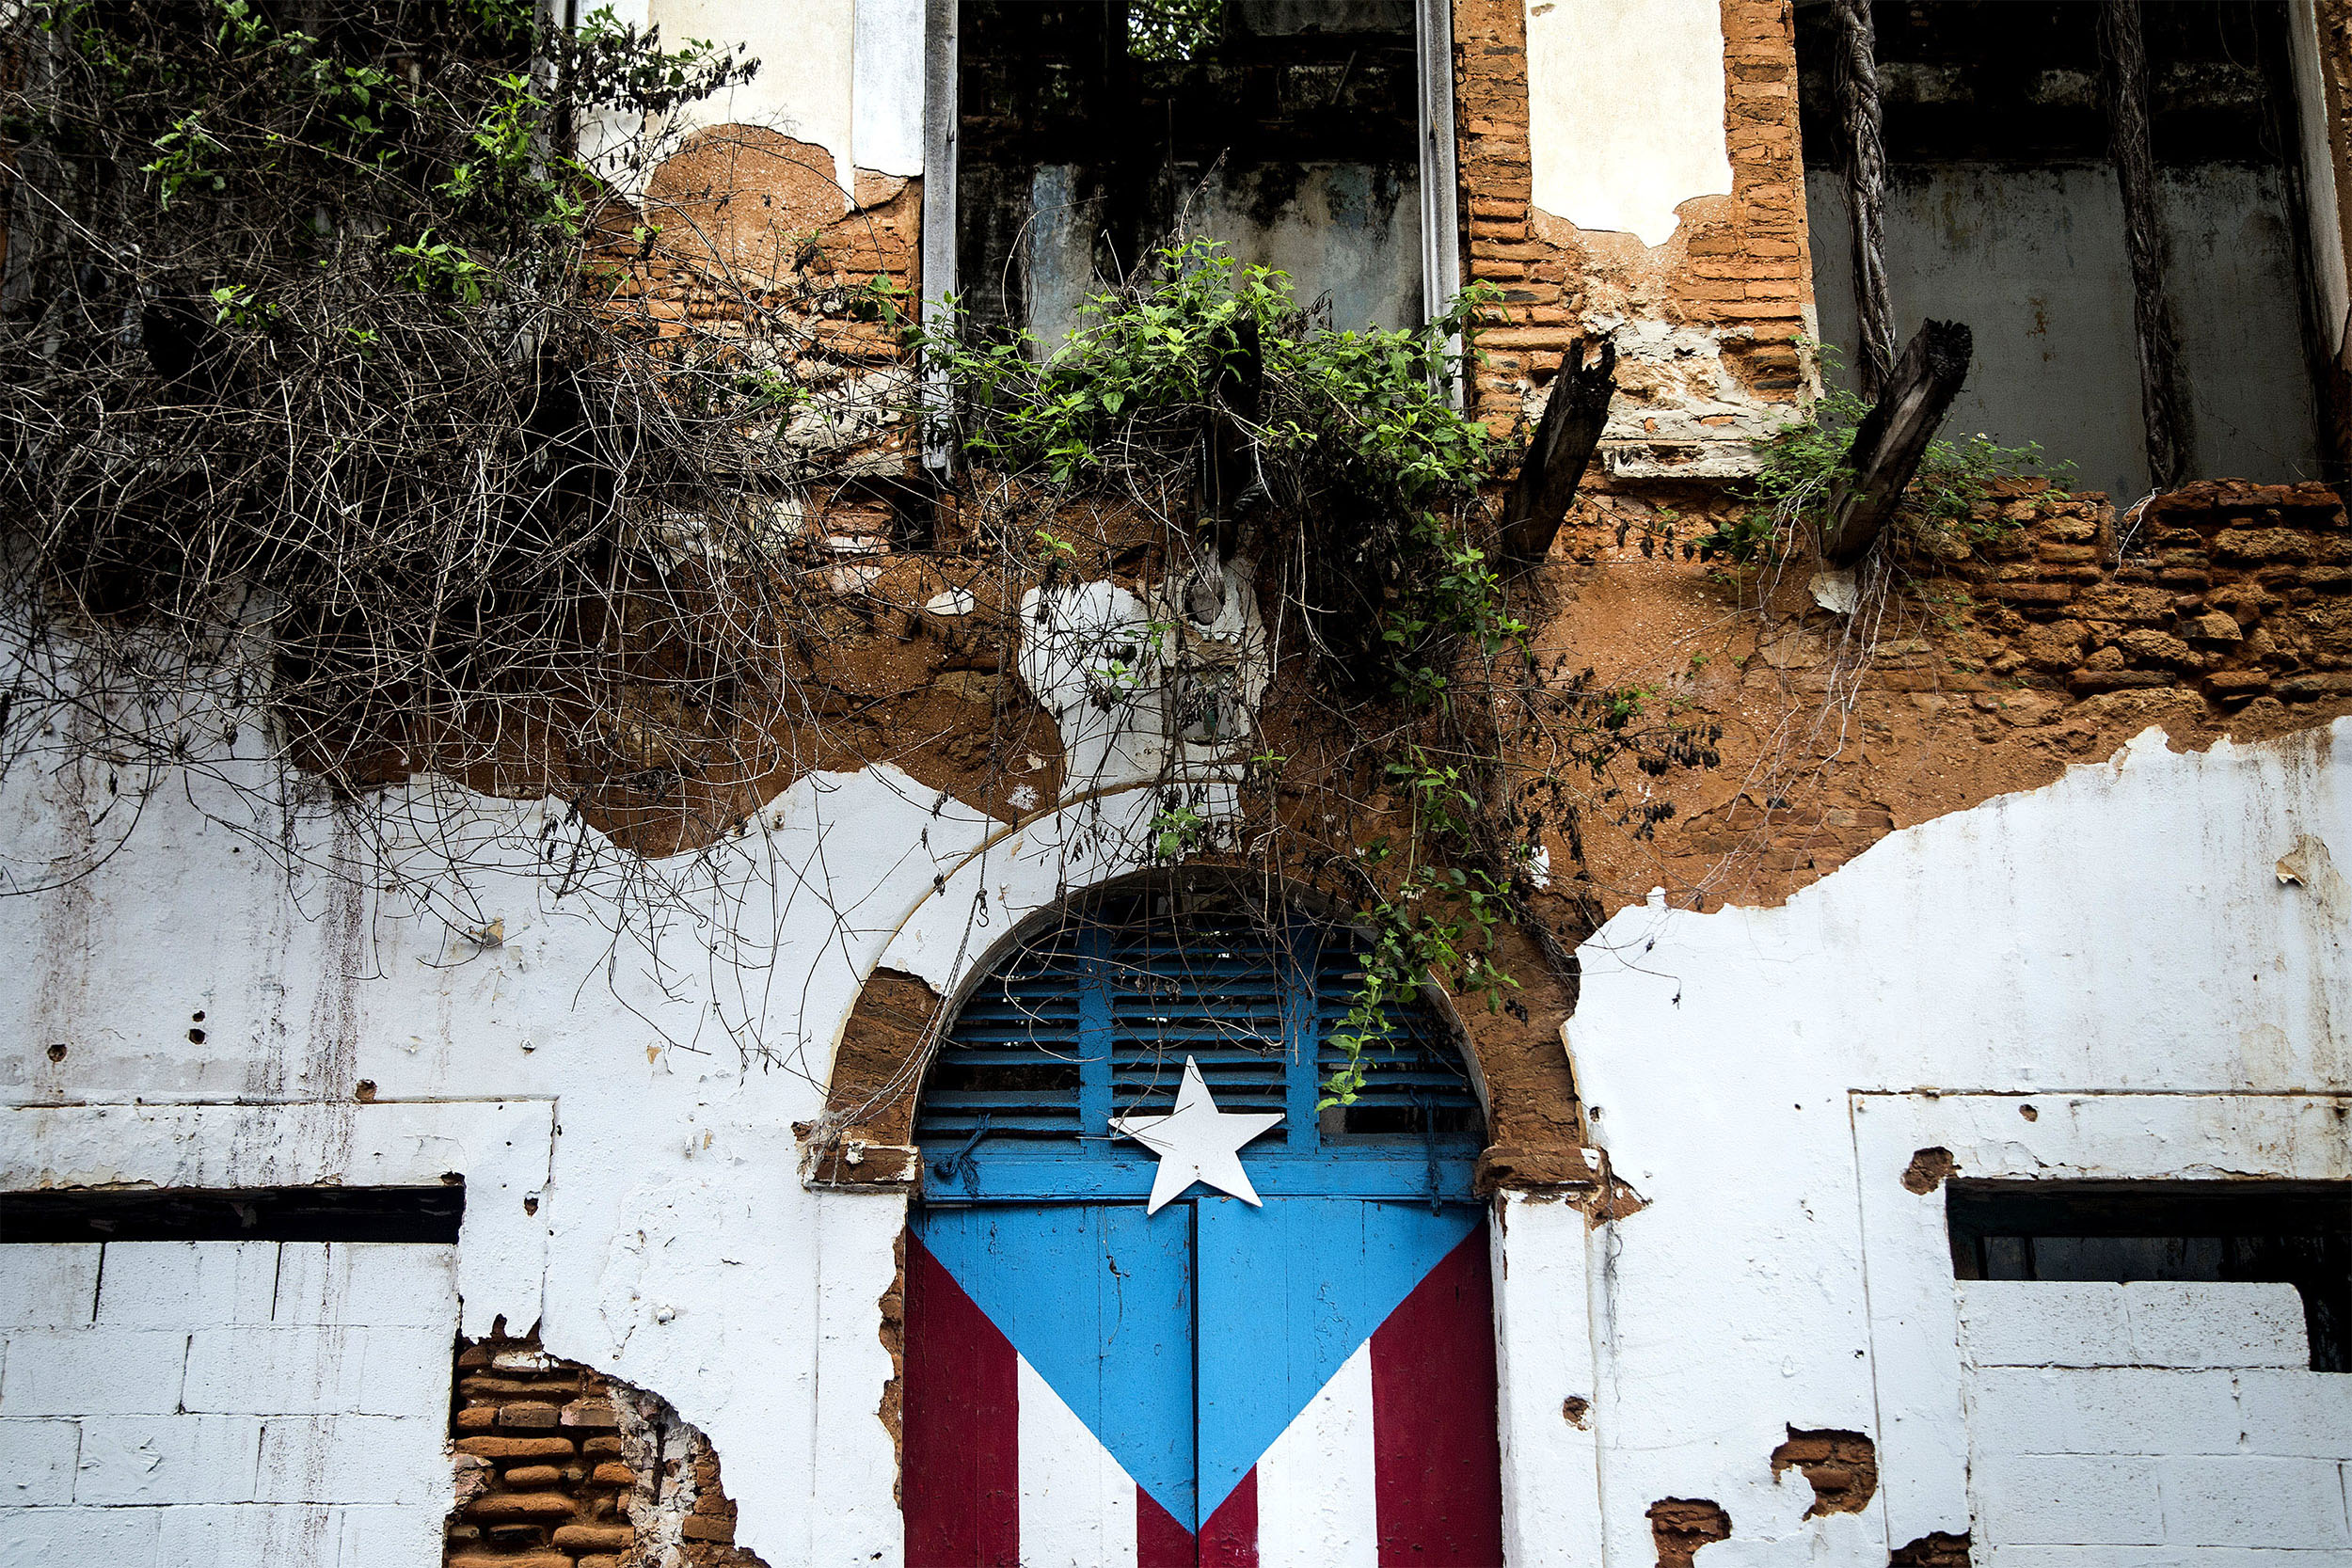 A Puerto Rican flag is painted on the doorway of an abandoned building in San Juan, Puerto Rico, on May 1, 2016.